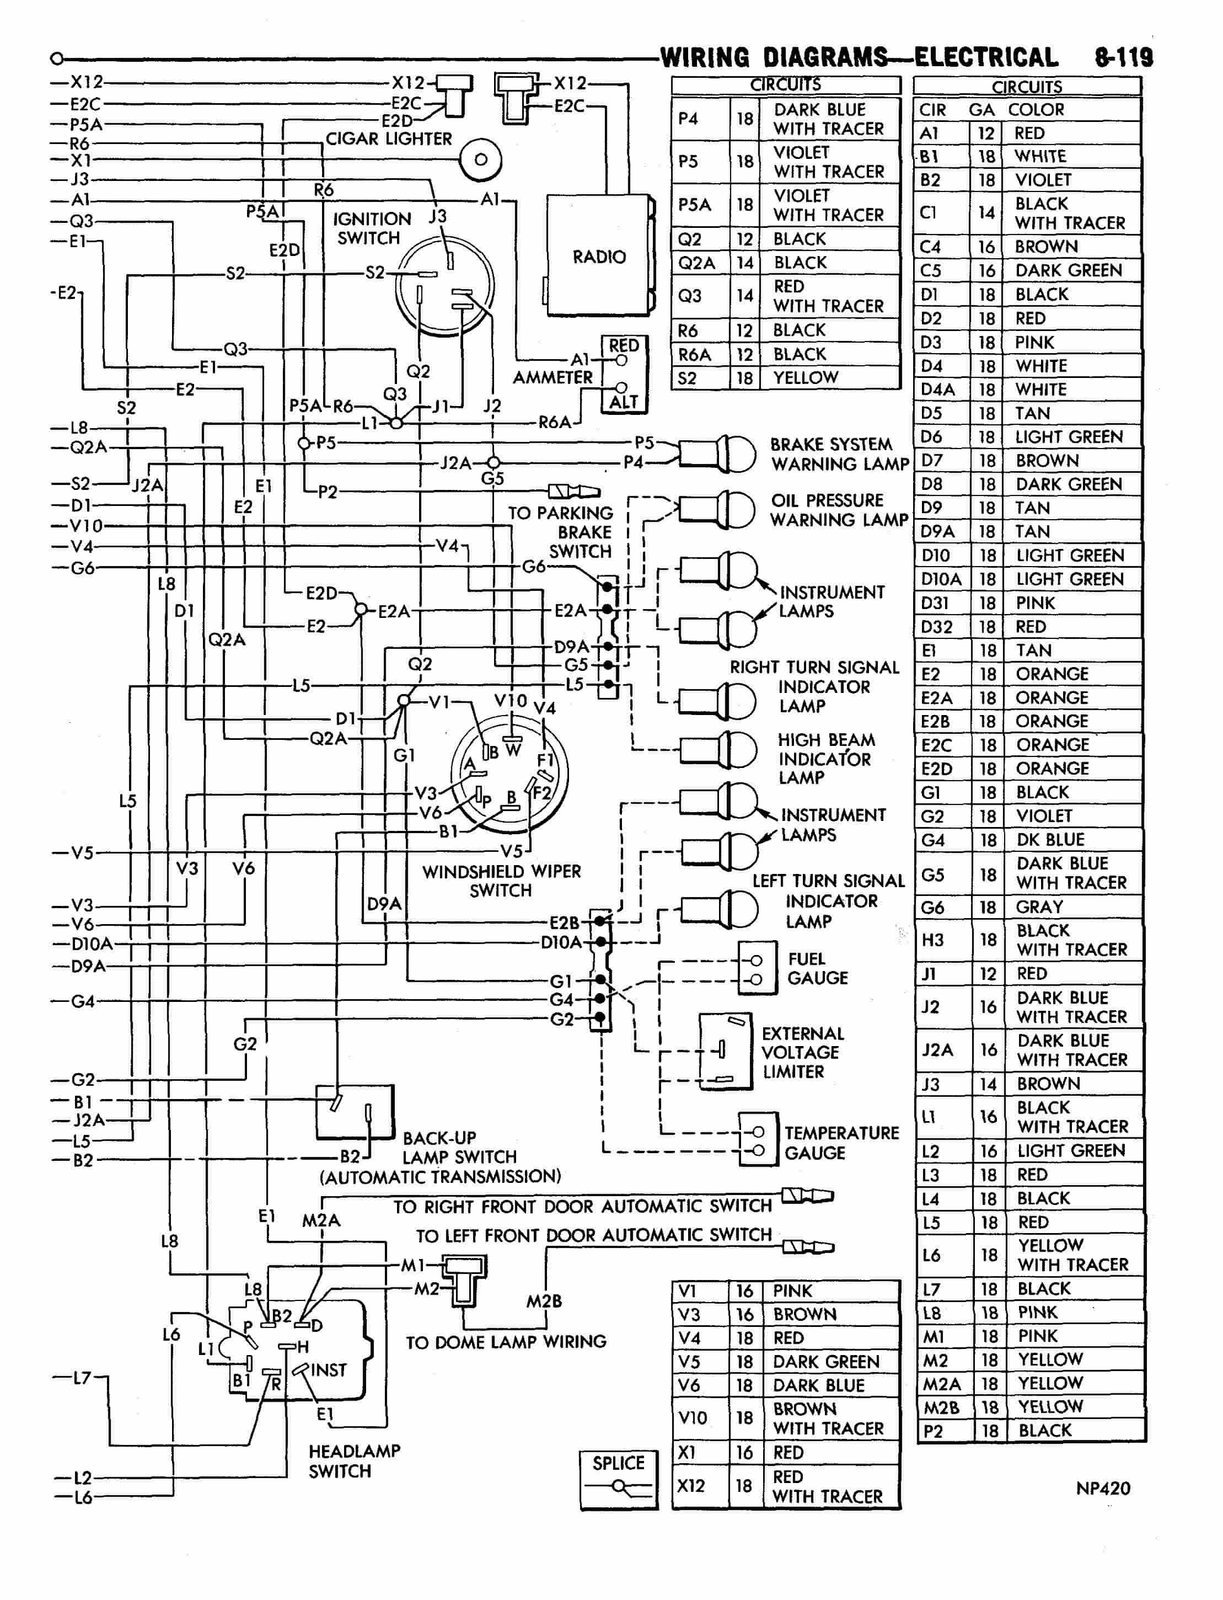 fucken 2012 dodge challenger wiring diagram 67 charger 440 wiring diagram 70 challenger wiring diagram 70 challenger wiring diagram #6